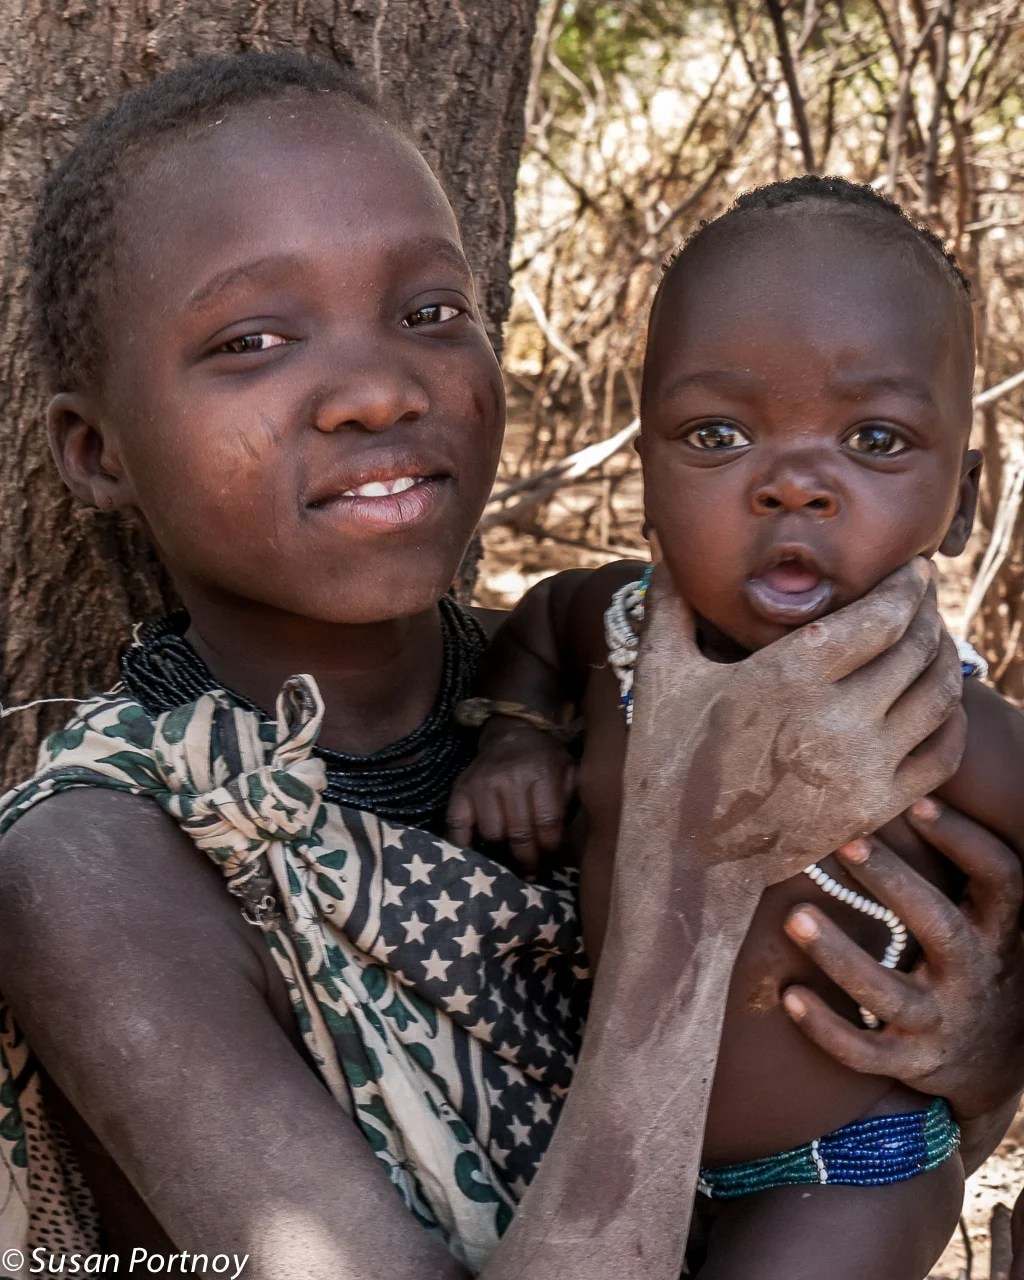 Young Hadzabe girl and baby #2